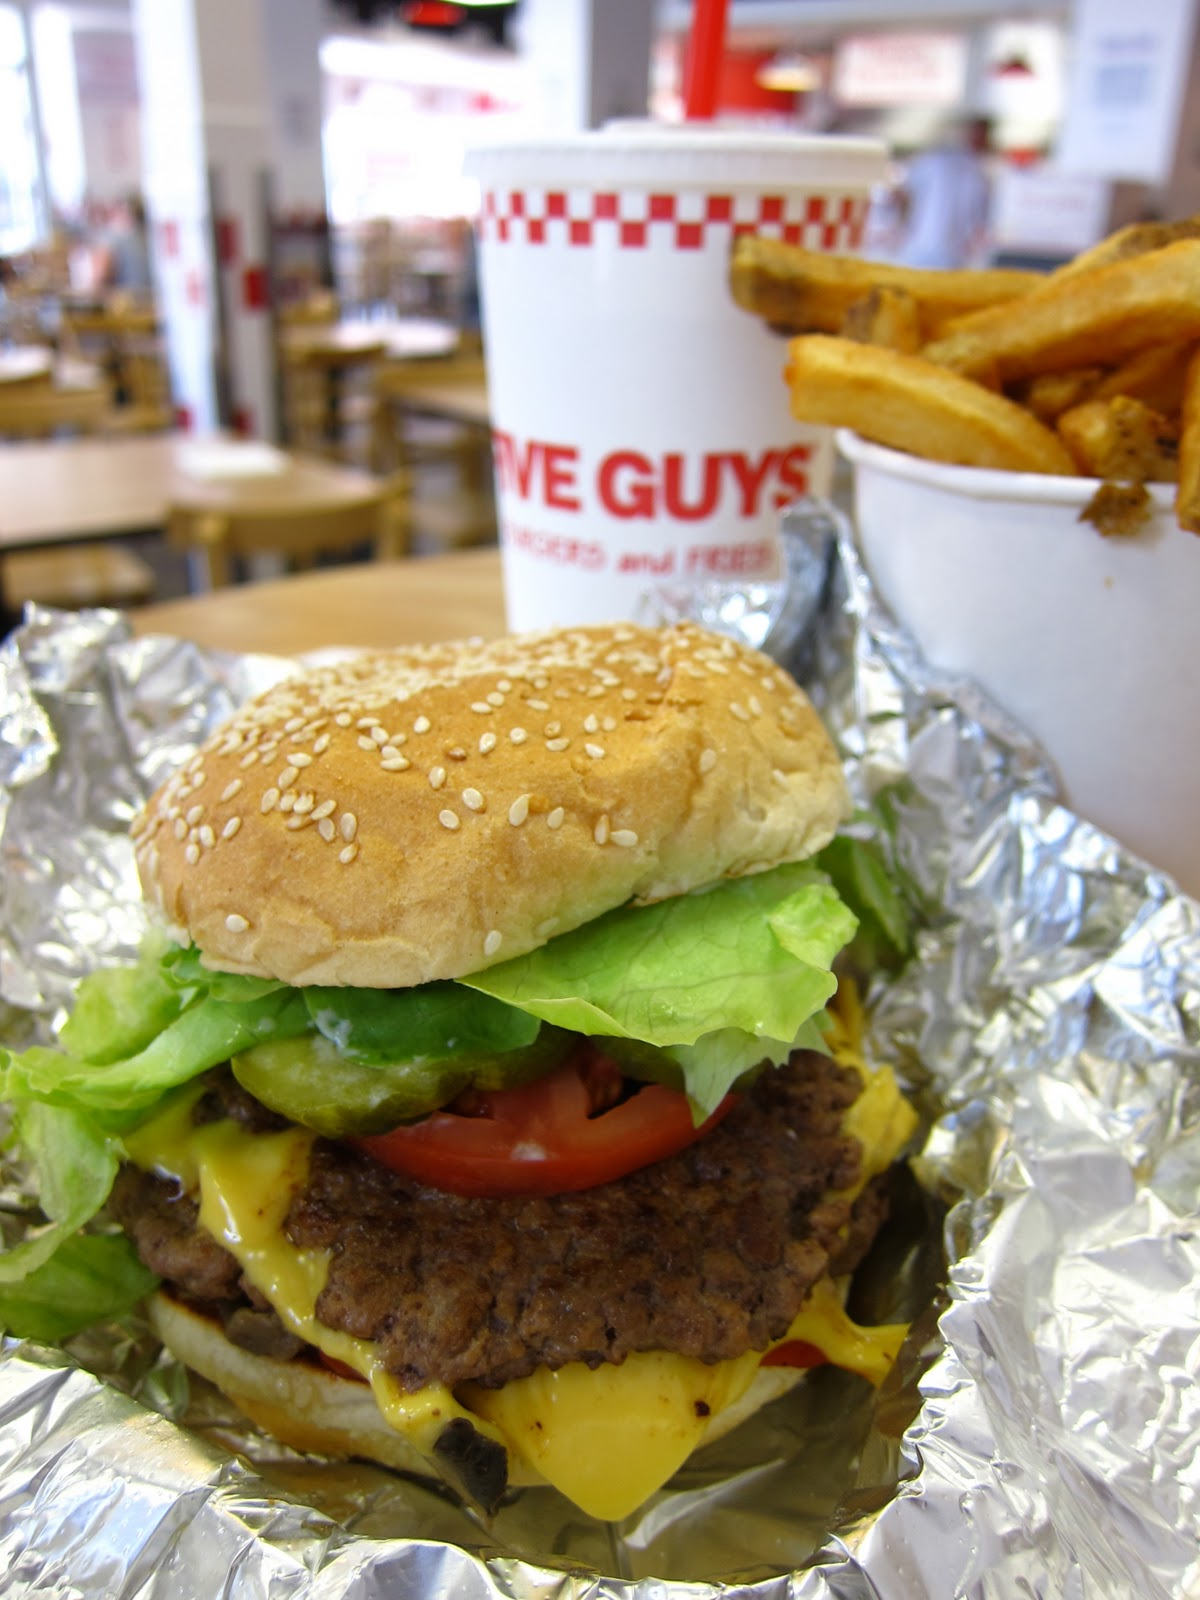 Ed In Park Slope A Brooklyn Blog Home Five Guys Infiltrates Sweetwolfs Wants Your Menu Suggestions